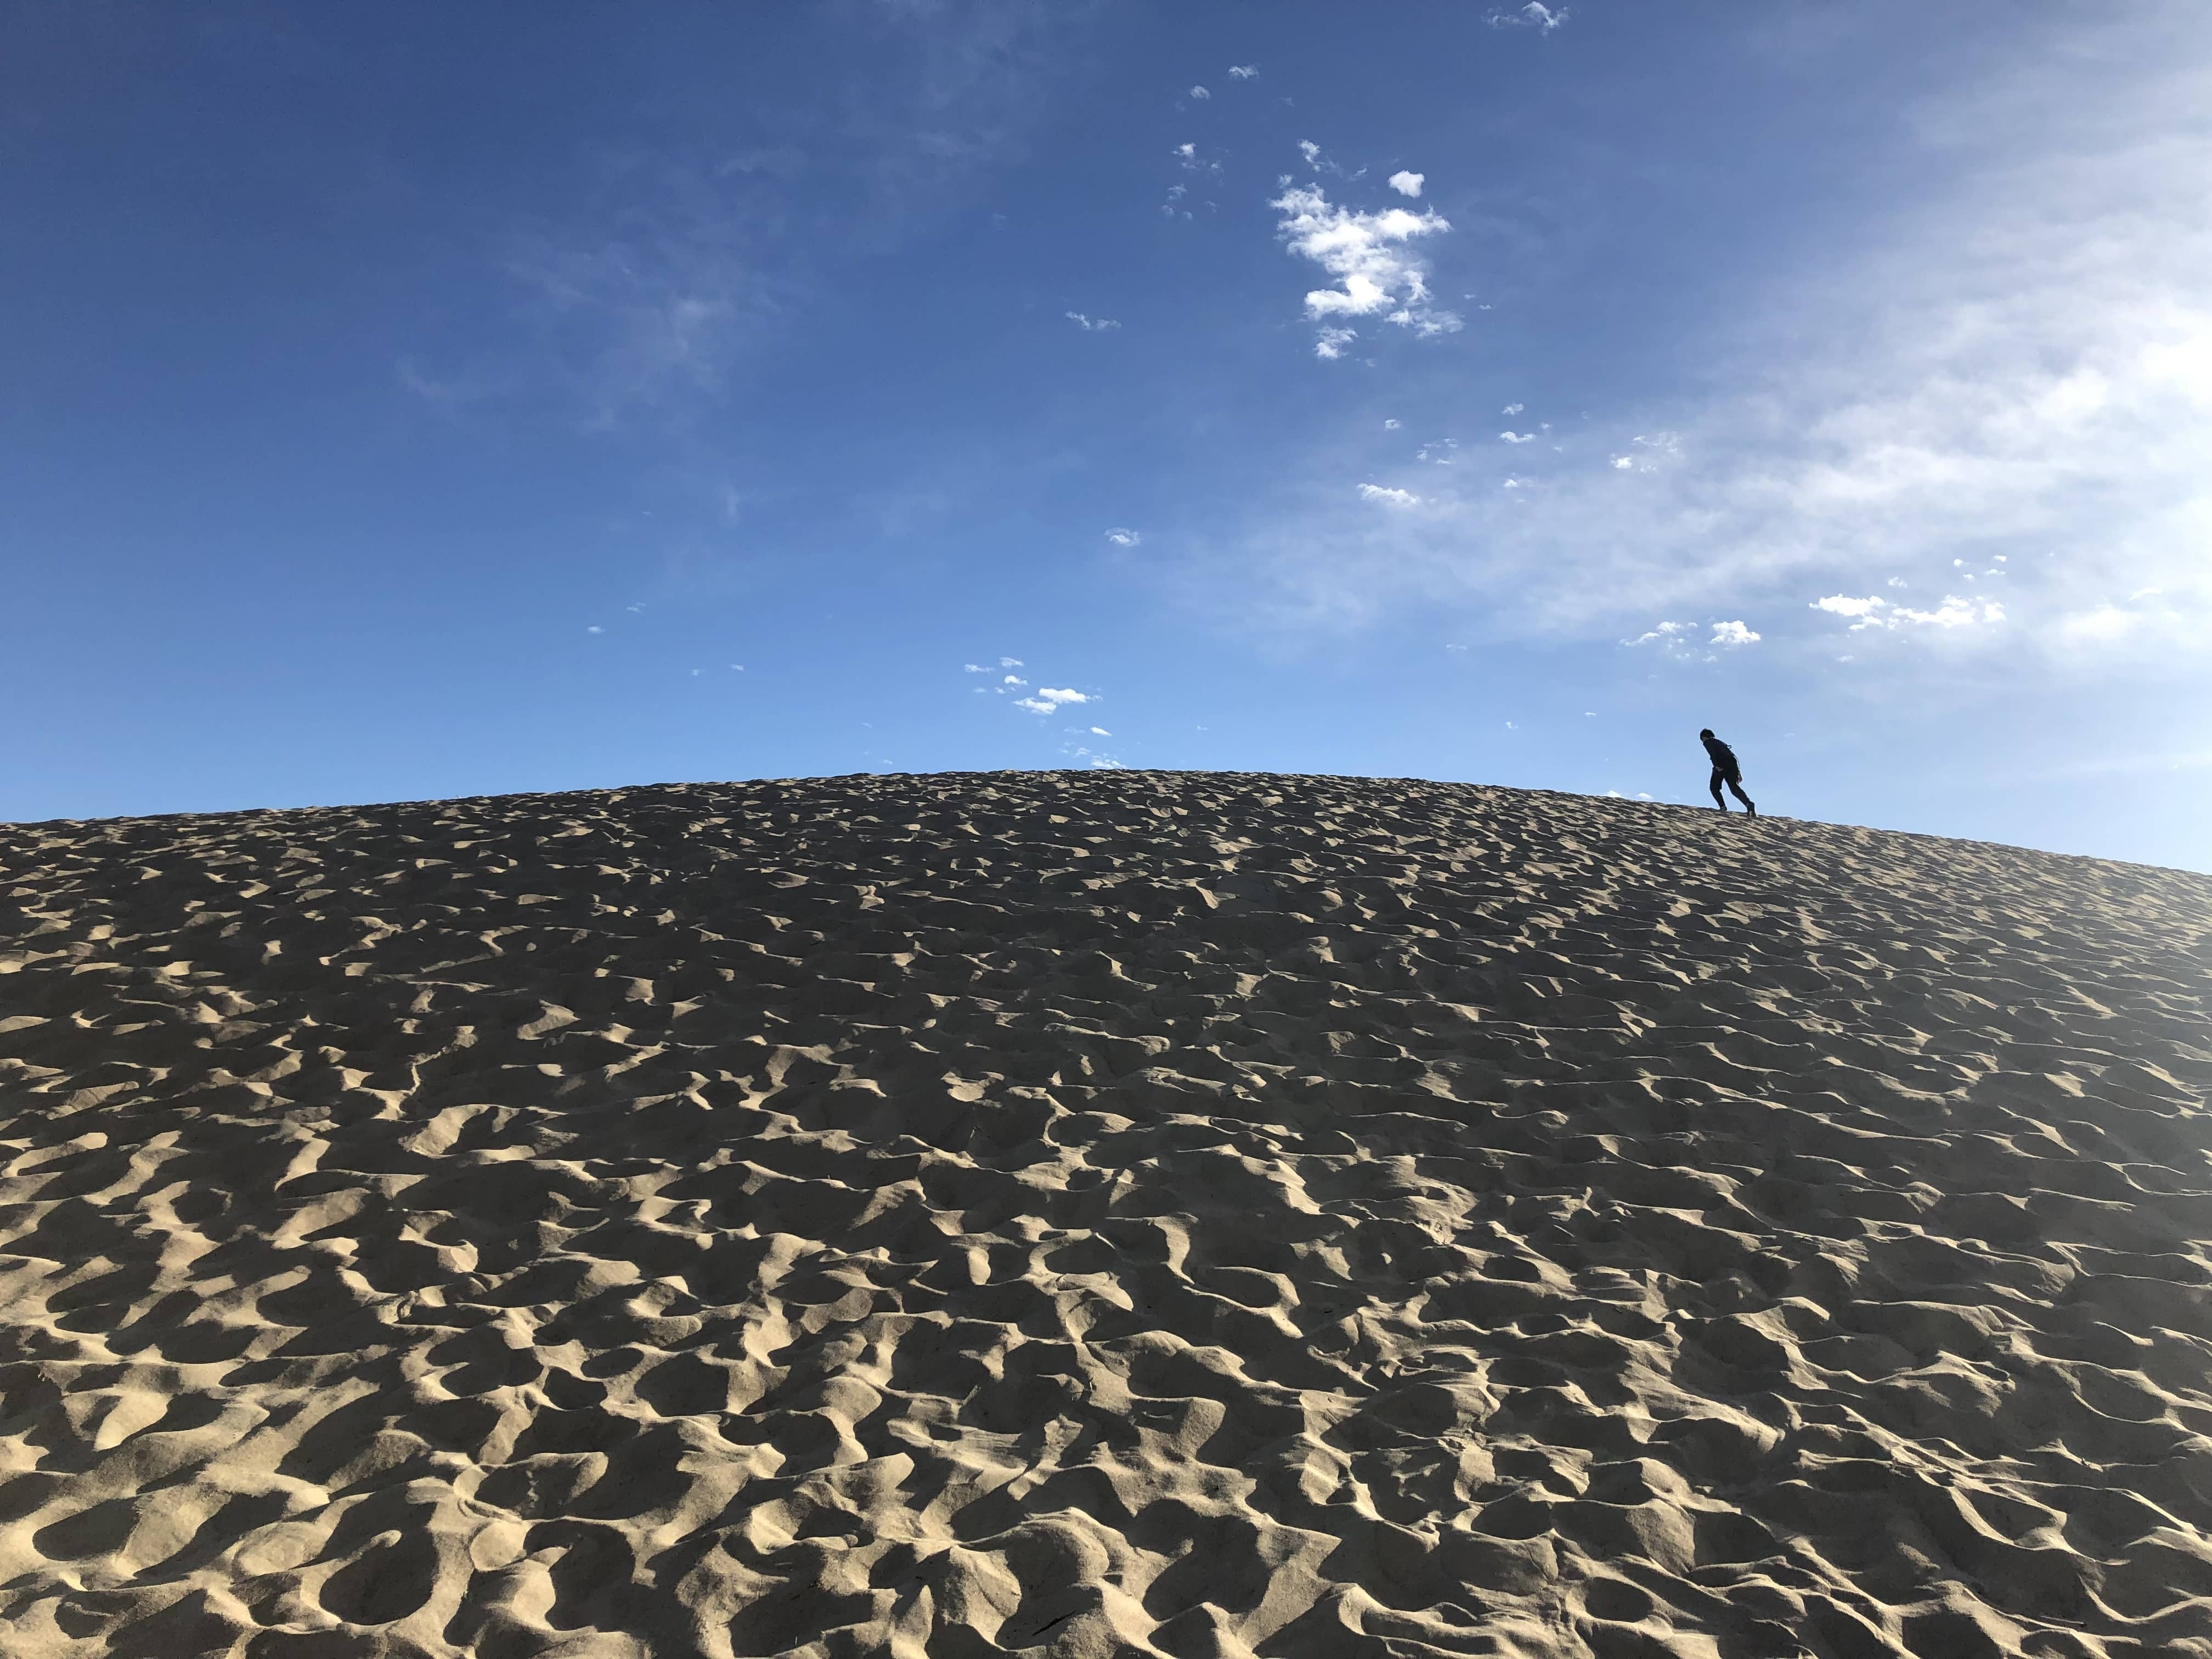 Hiking in the area of Mesquite Flat Sand Dunes was pretty fun.